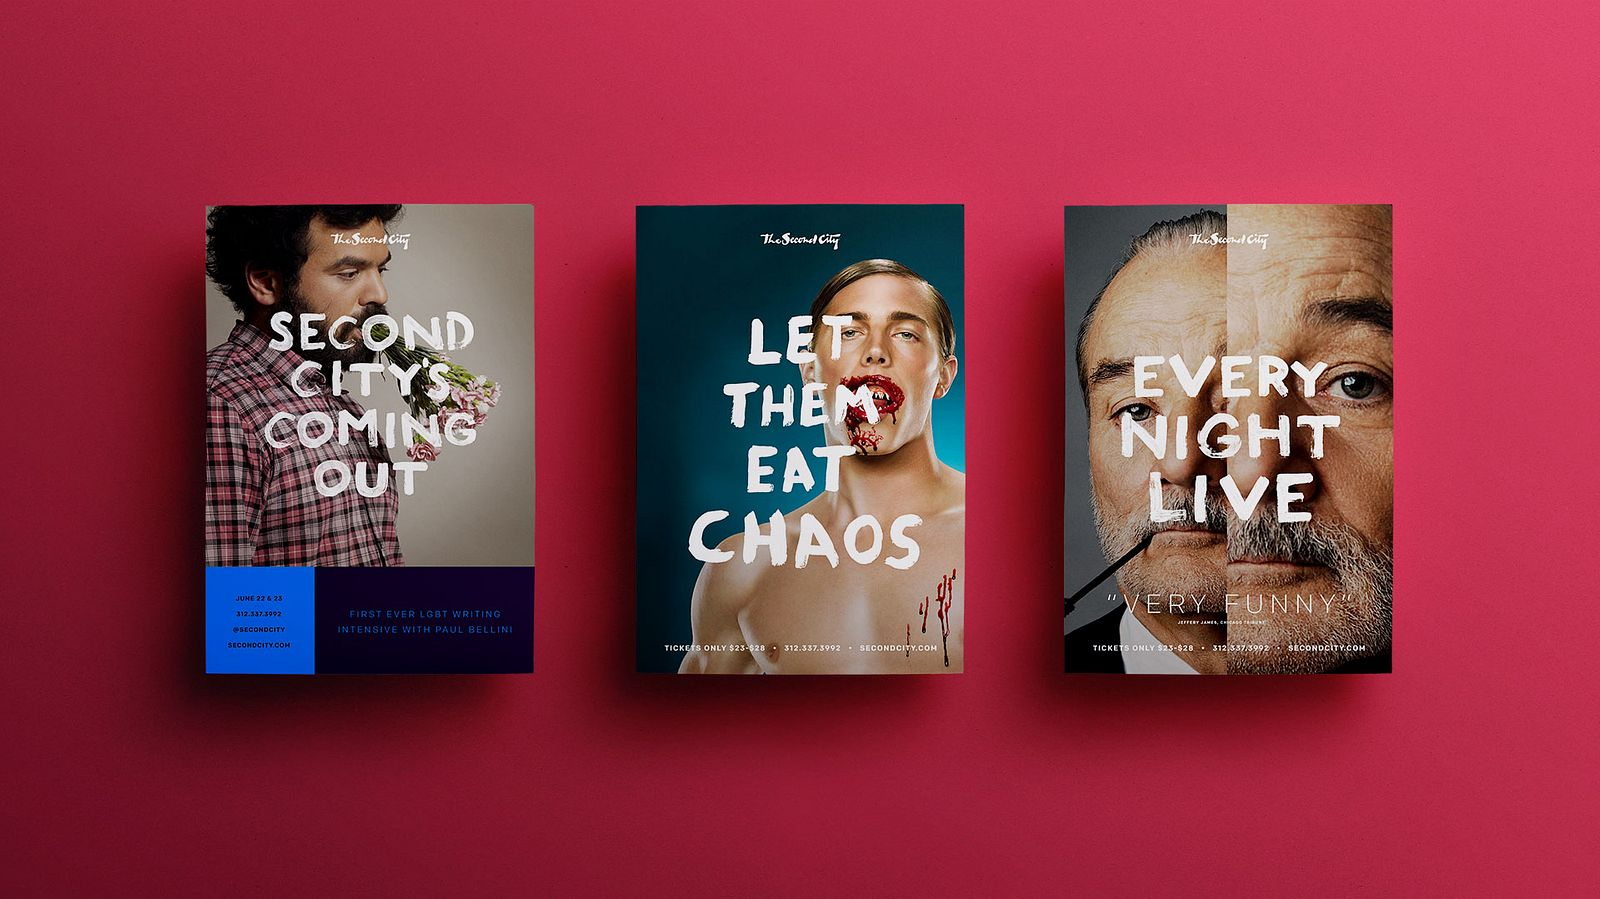 Second City Branding and Posters – designed and produced by Someoddpilot